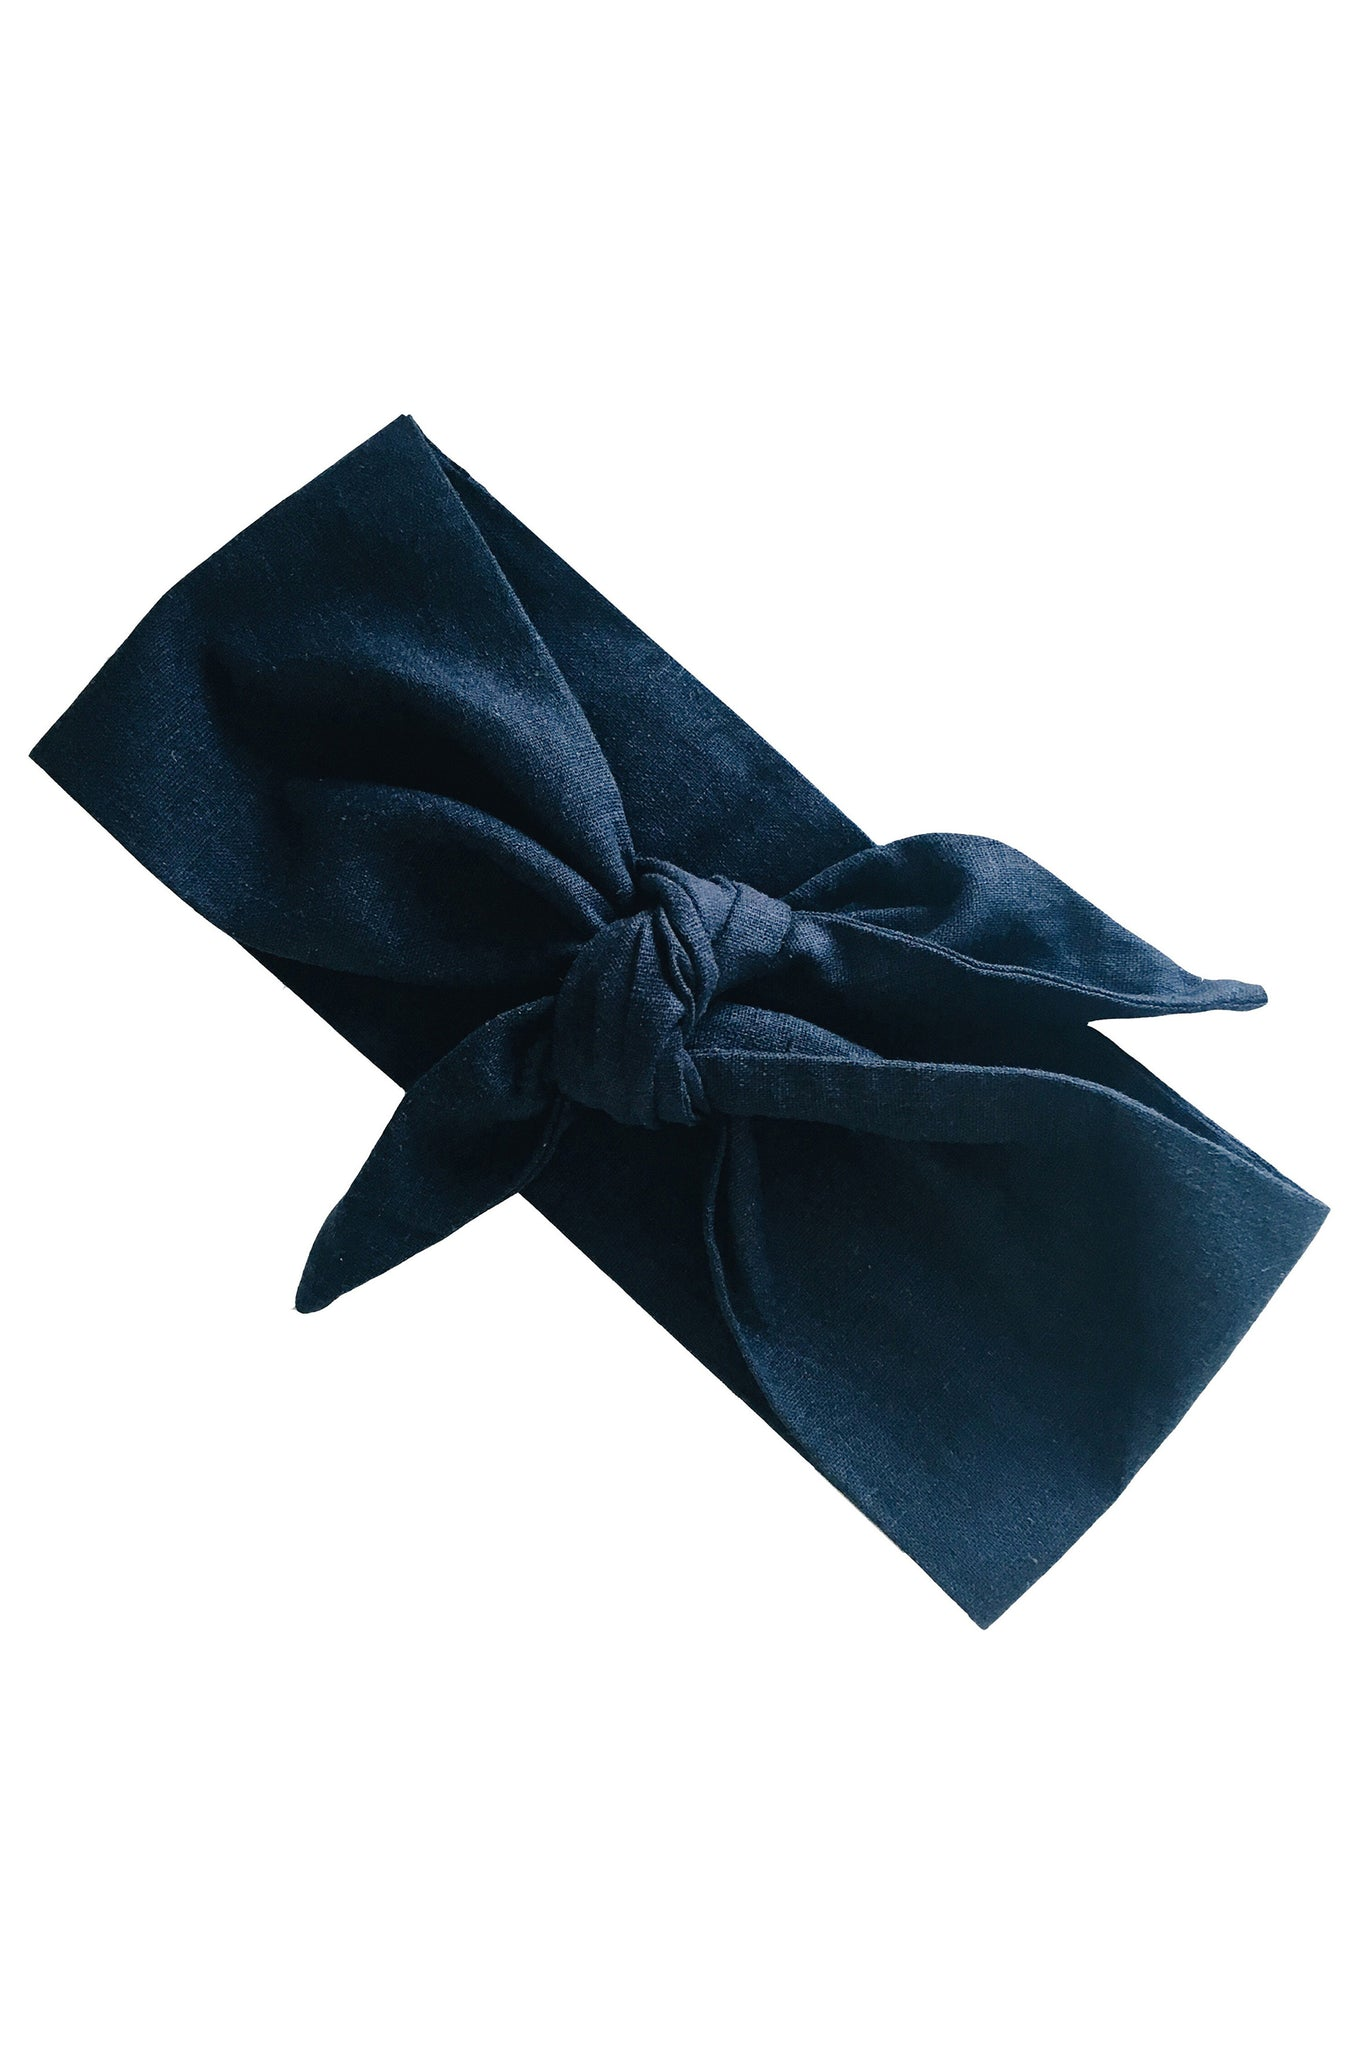 CRUISING CAPRI LINEN HEAD WRAP - NAVY BLUE